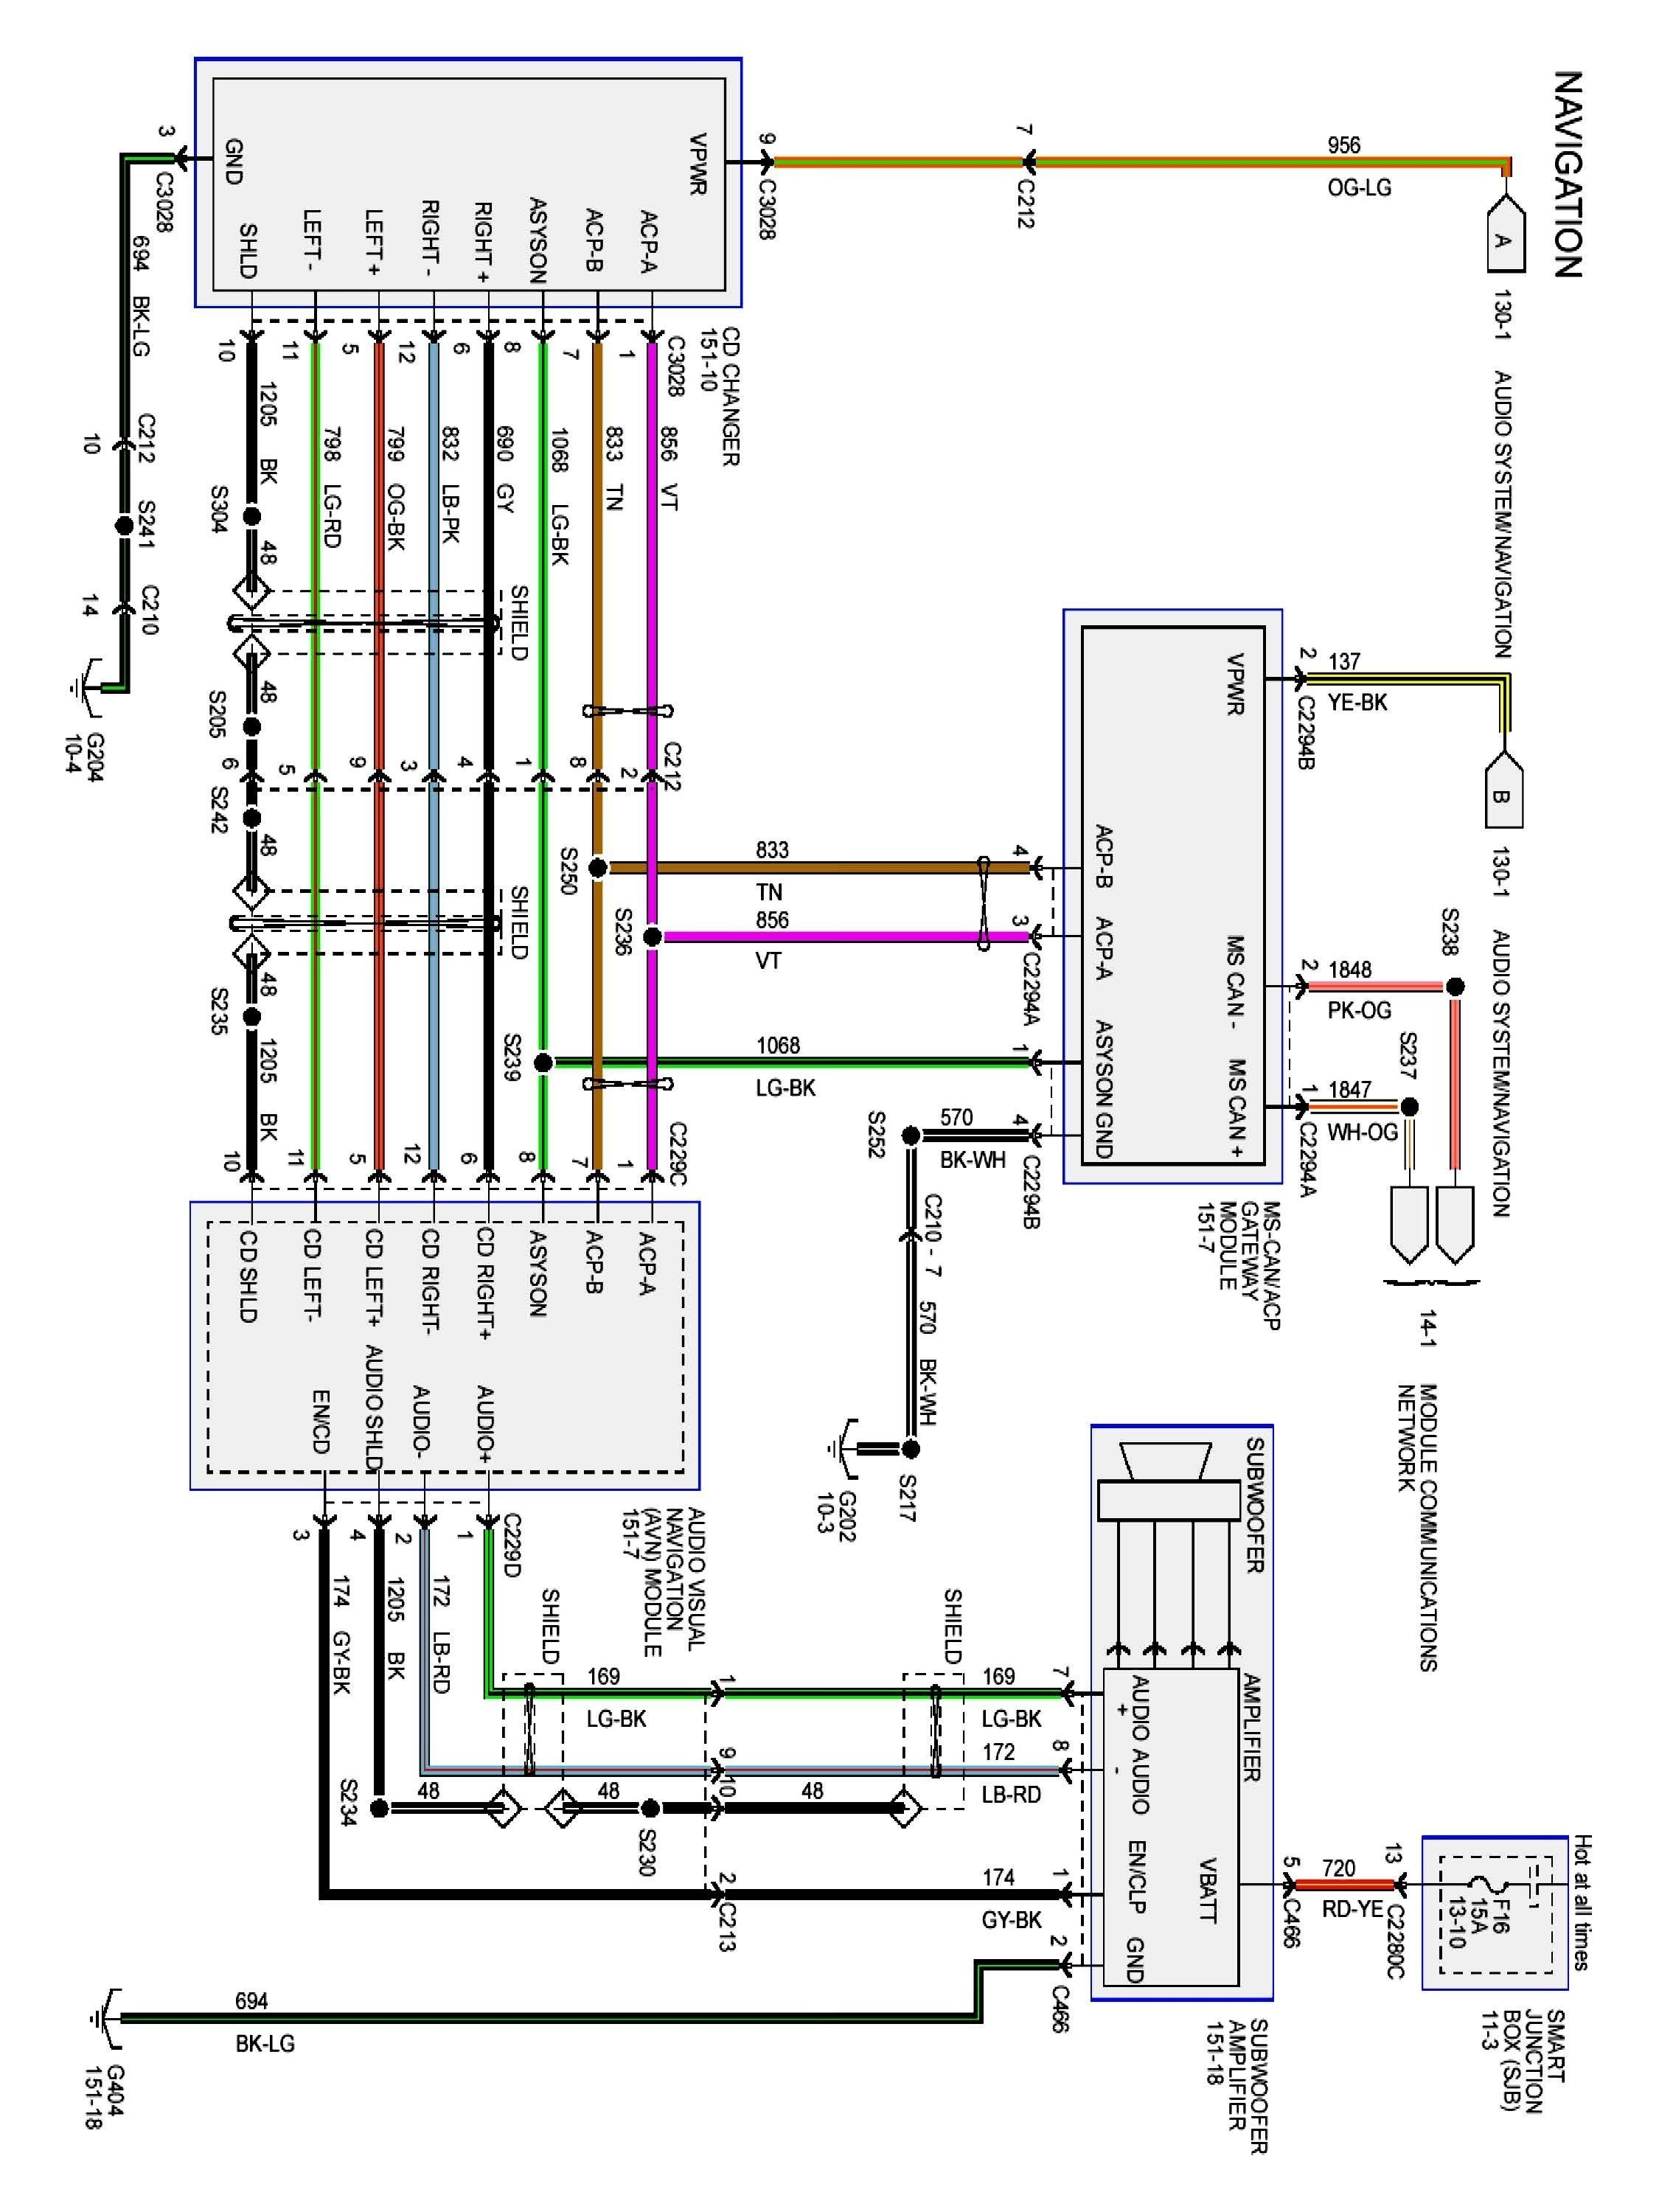 Awesome Td42 Alternator Wiring Diagram Diagrams Digramssample Diagramimages Wiringdiagrams Ford Expedition Electrical Wiring Diagram Trailer Wiring Diagram